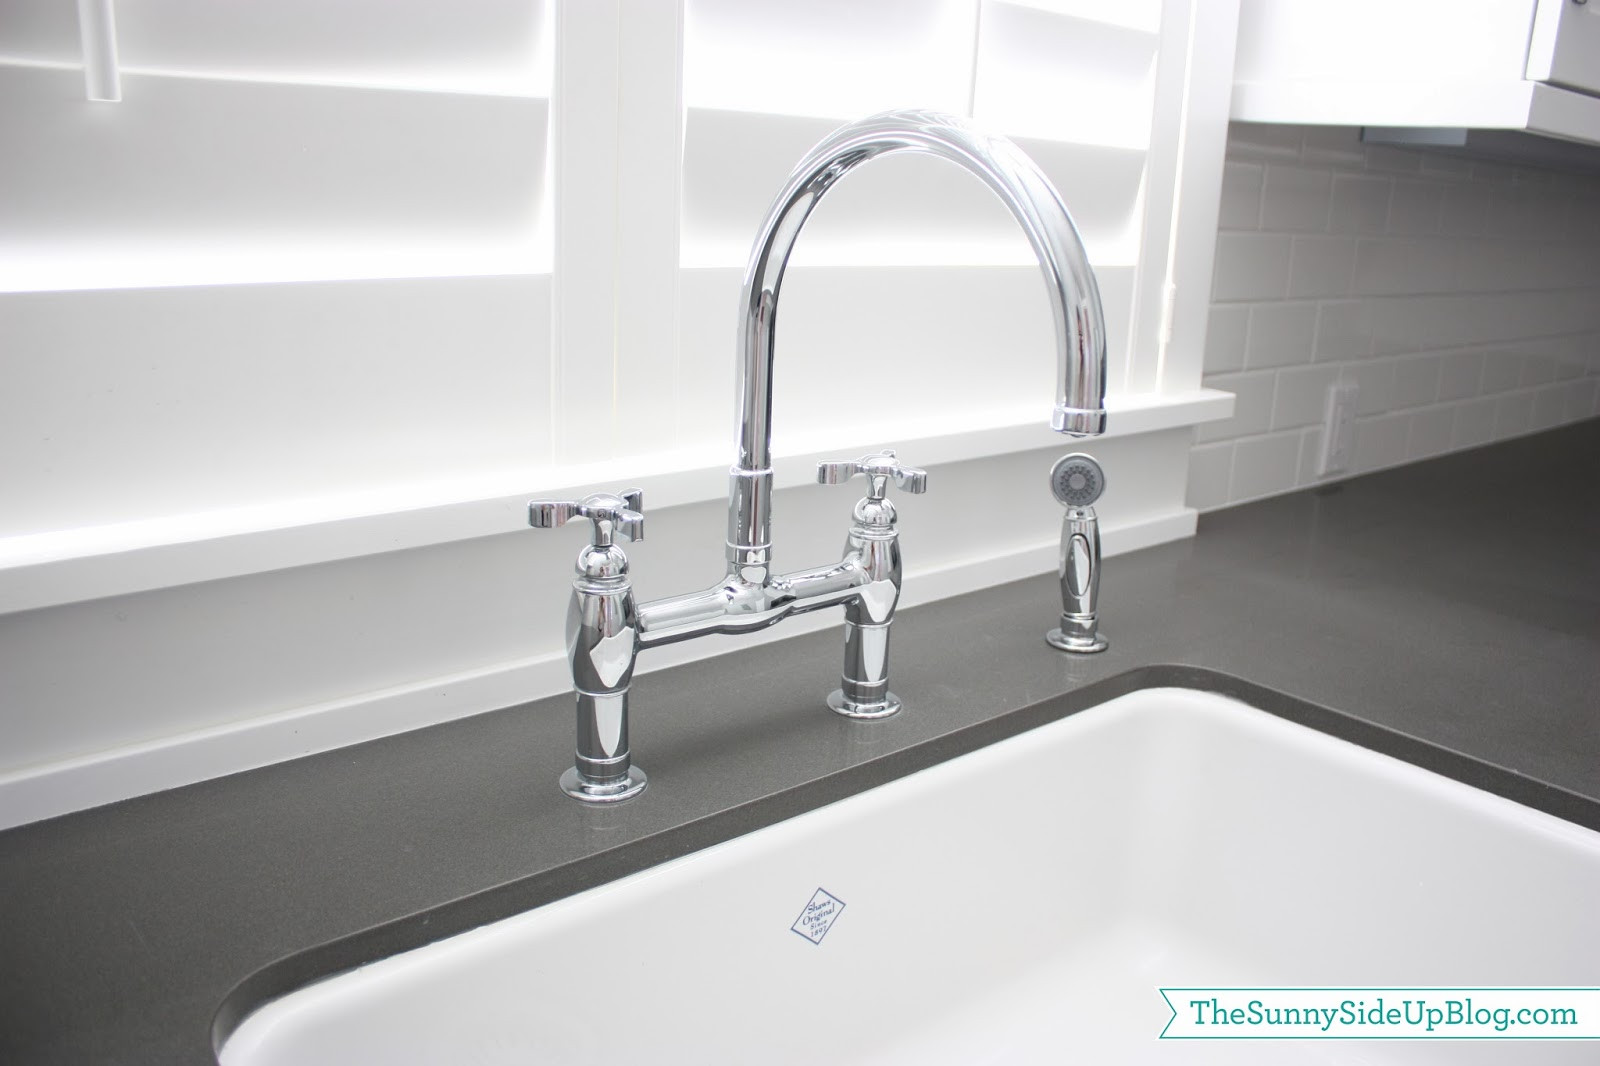 Best ideas about Laundry Room Faucets . Save or Pin Downstairs Laundry Room The Sunny Side Up Blog Now.